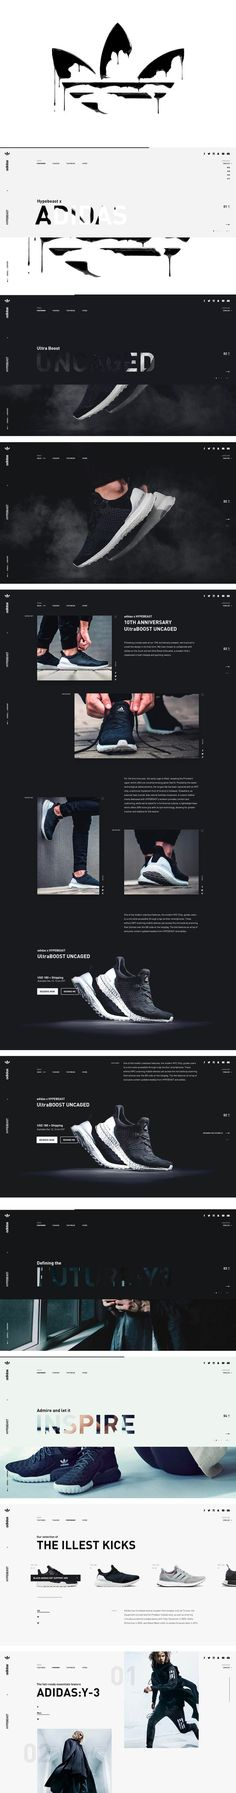 Hypebeast Pitch by Refresh Studio: